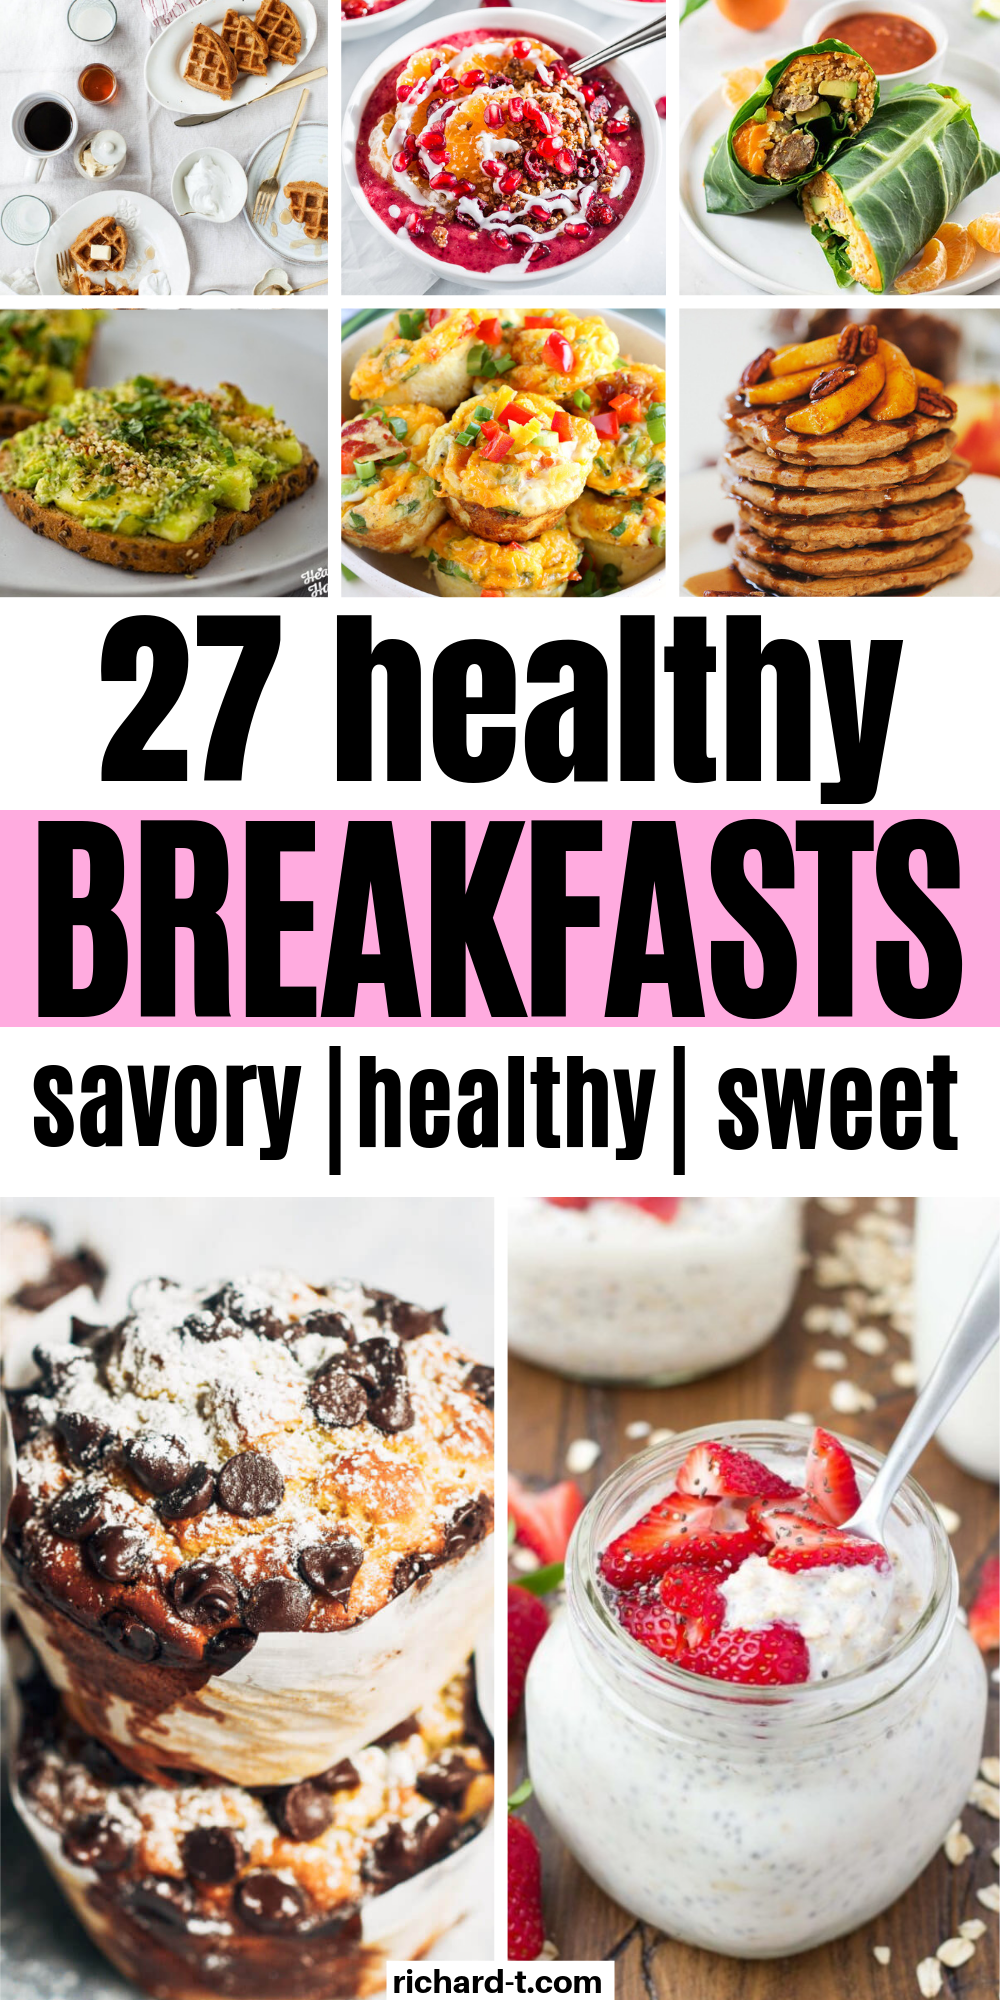 27 Best Healthy Breakfast Recipes To Start The Day Off Right images